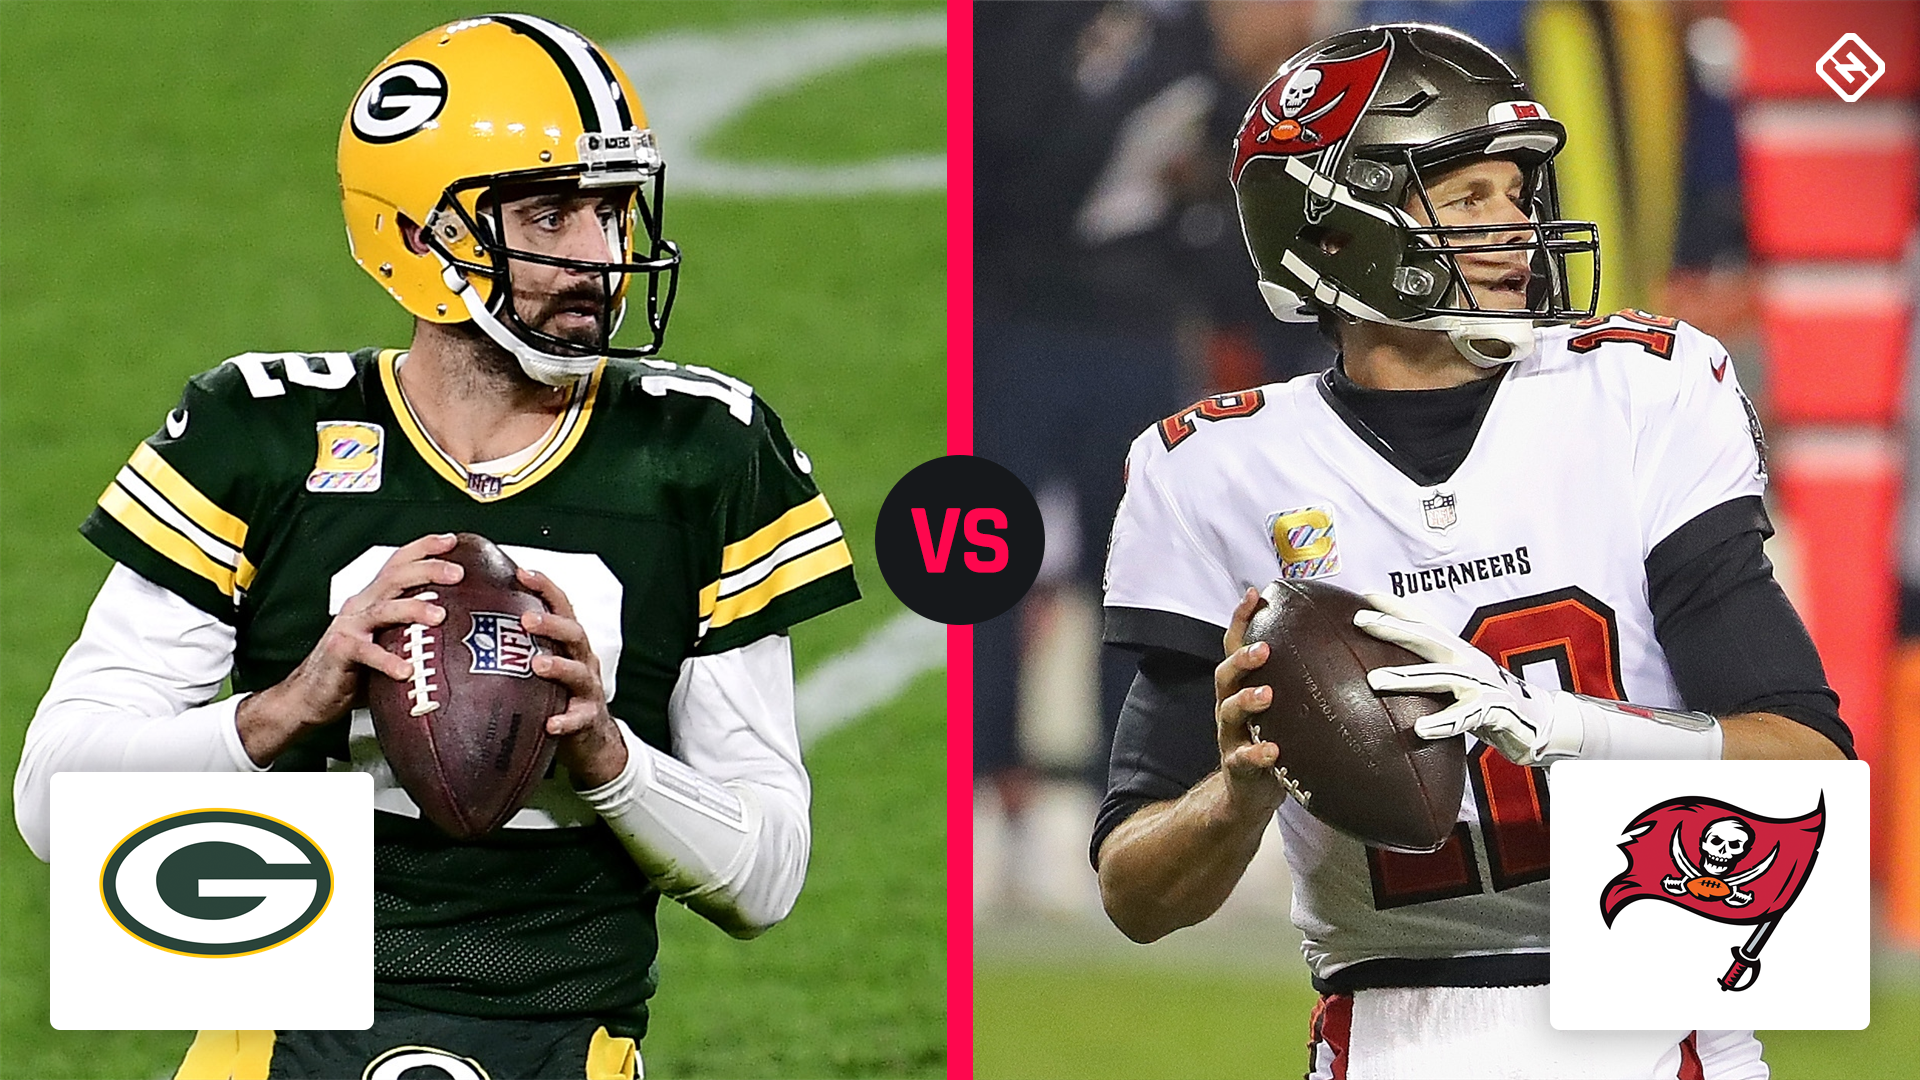 NFL odds, lines, point spreads: Updated betting information for picking NFC, AFC championship games